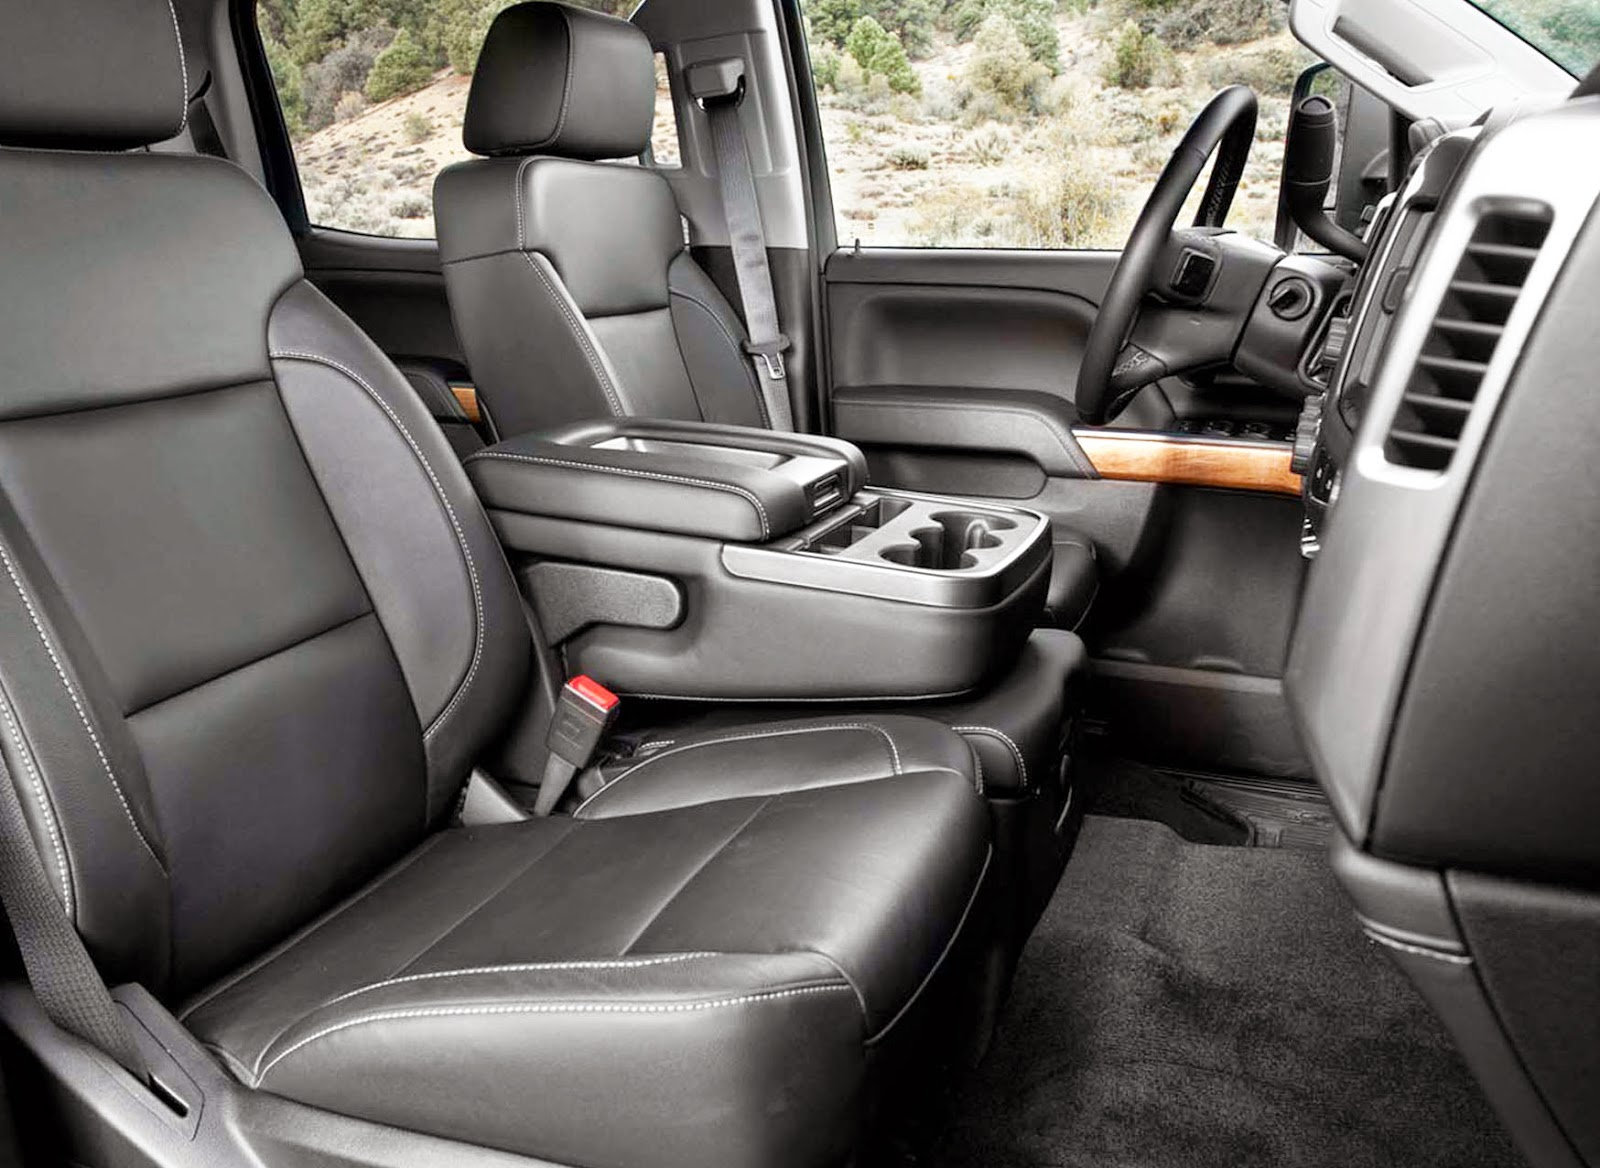 Chevy Silverado Seat Covers IMAGE